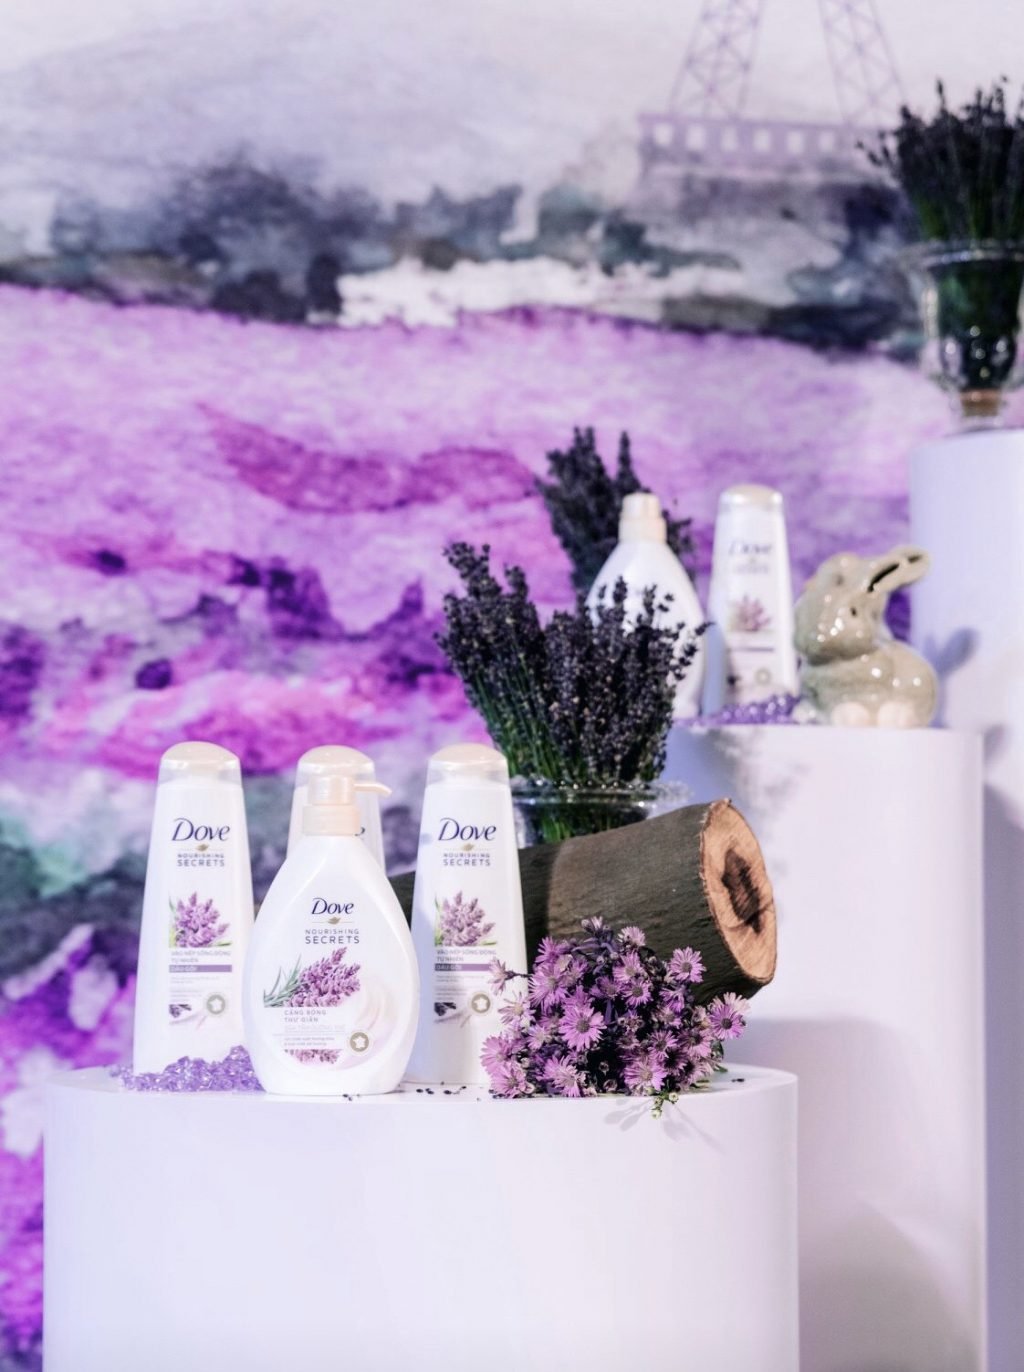 Image result for Dove Nourishing Secrets dầu xả